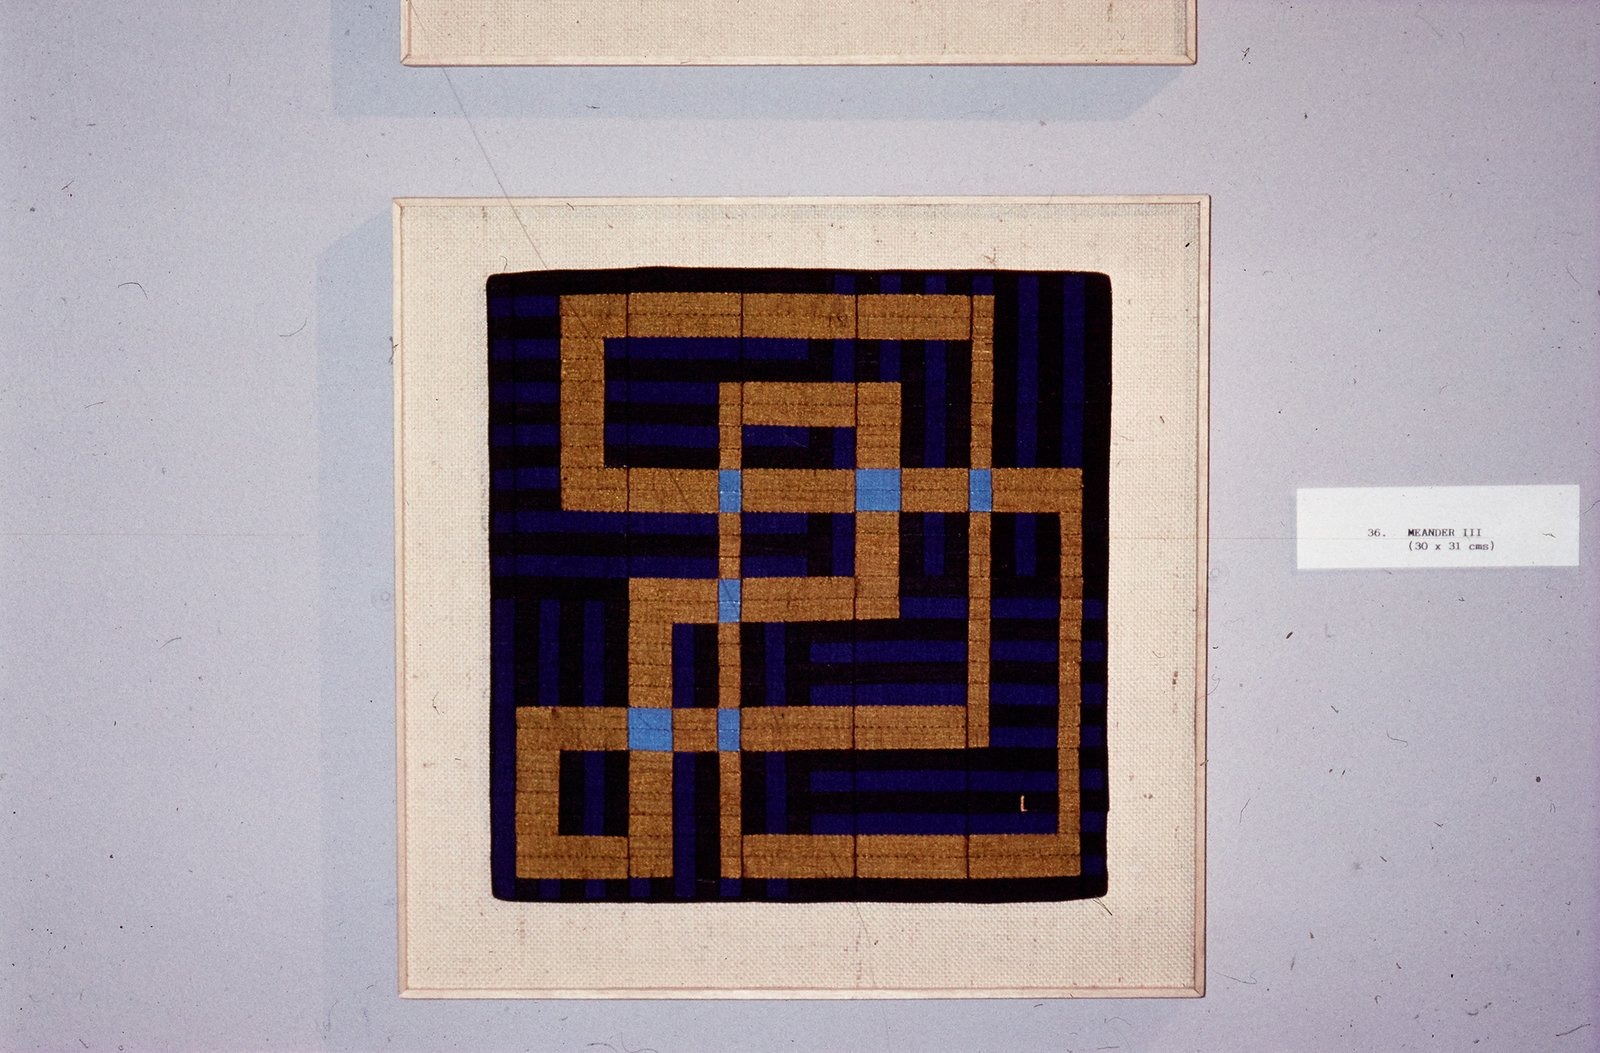 """In the 1970s, searching for another outlet for her creativity, Lucienne began to produce one-of-a-kind silk mosaics, like """"Meander 3"""" (1990). Image courtesy The Robin & Lucienne Day Foundation."""